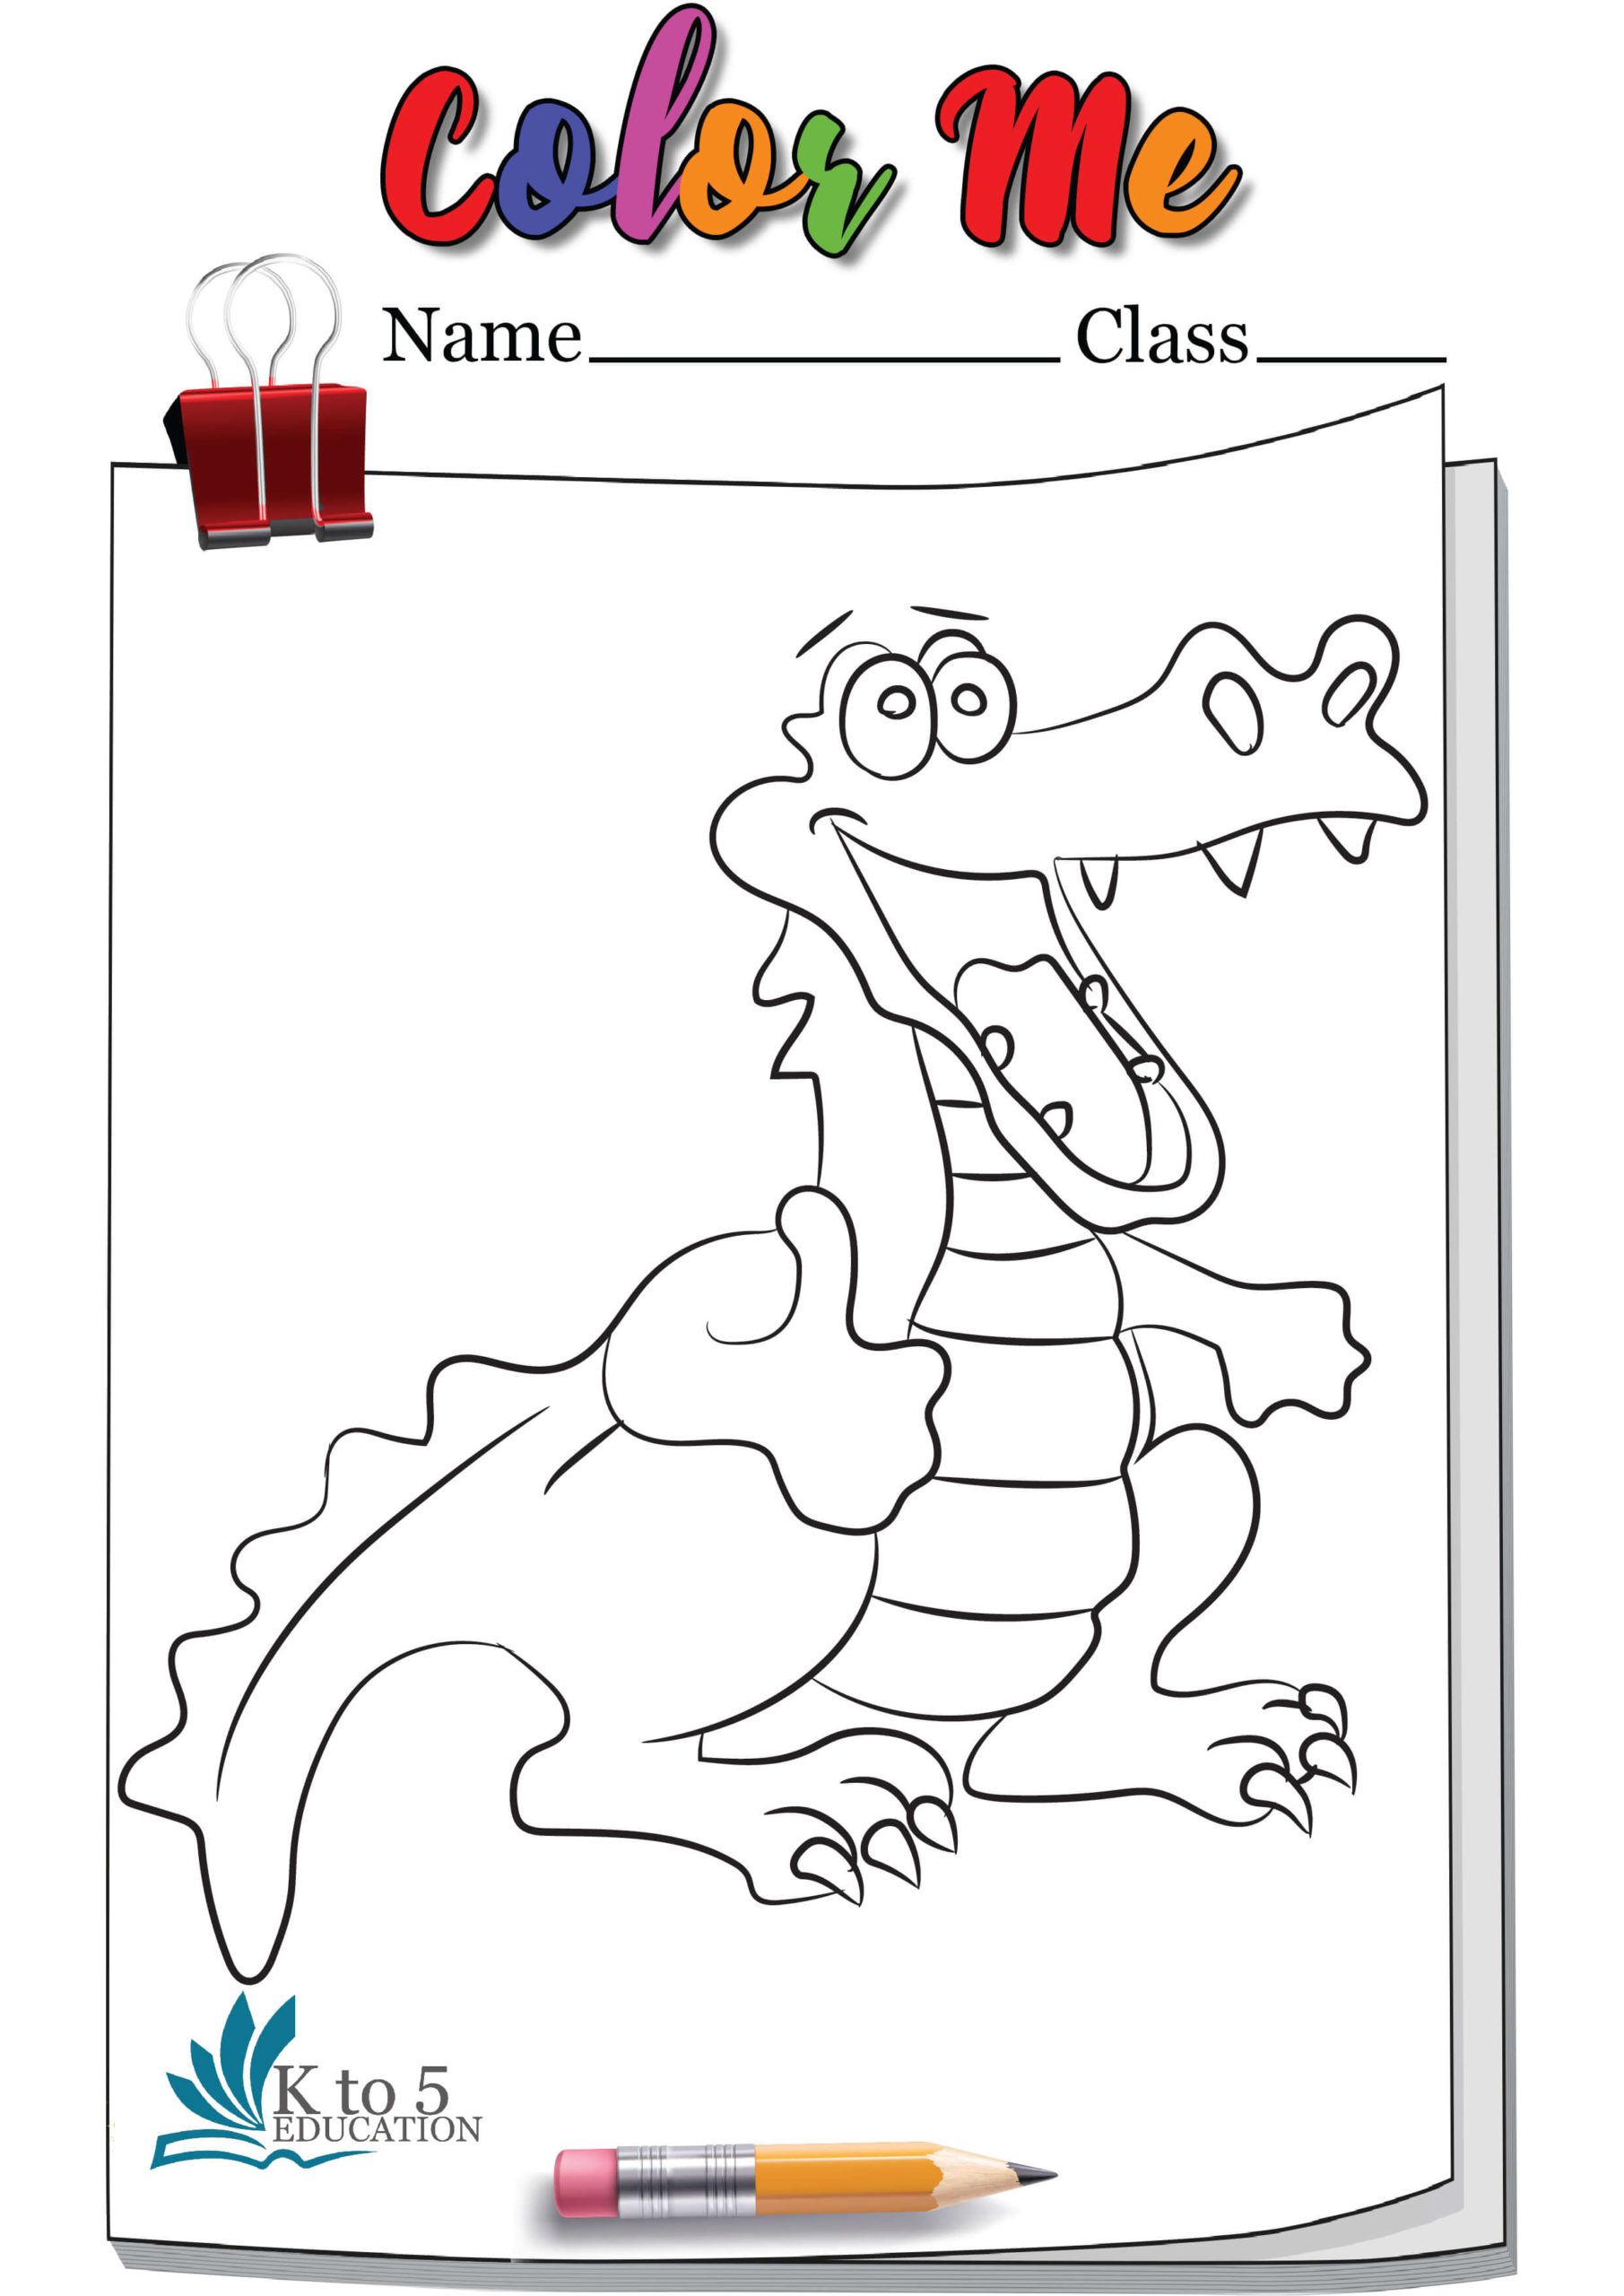 Crocodile Weaving Thumbsup Coloring page worksheet